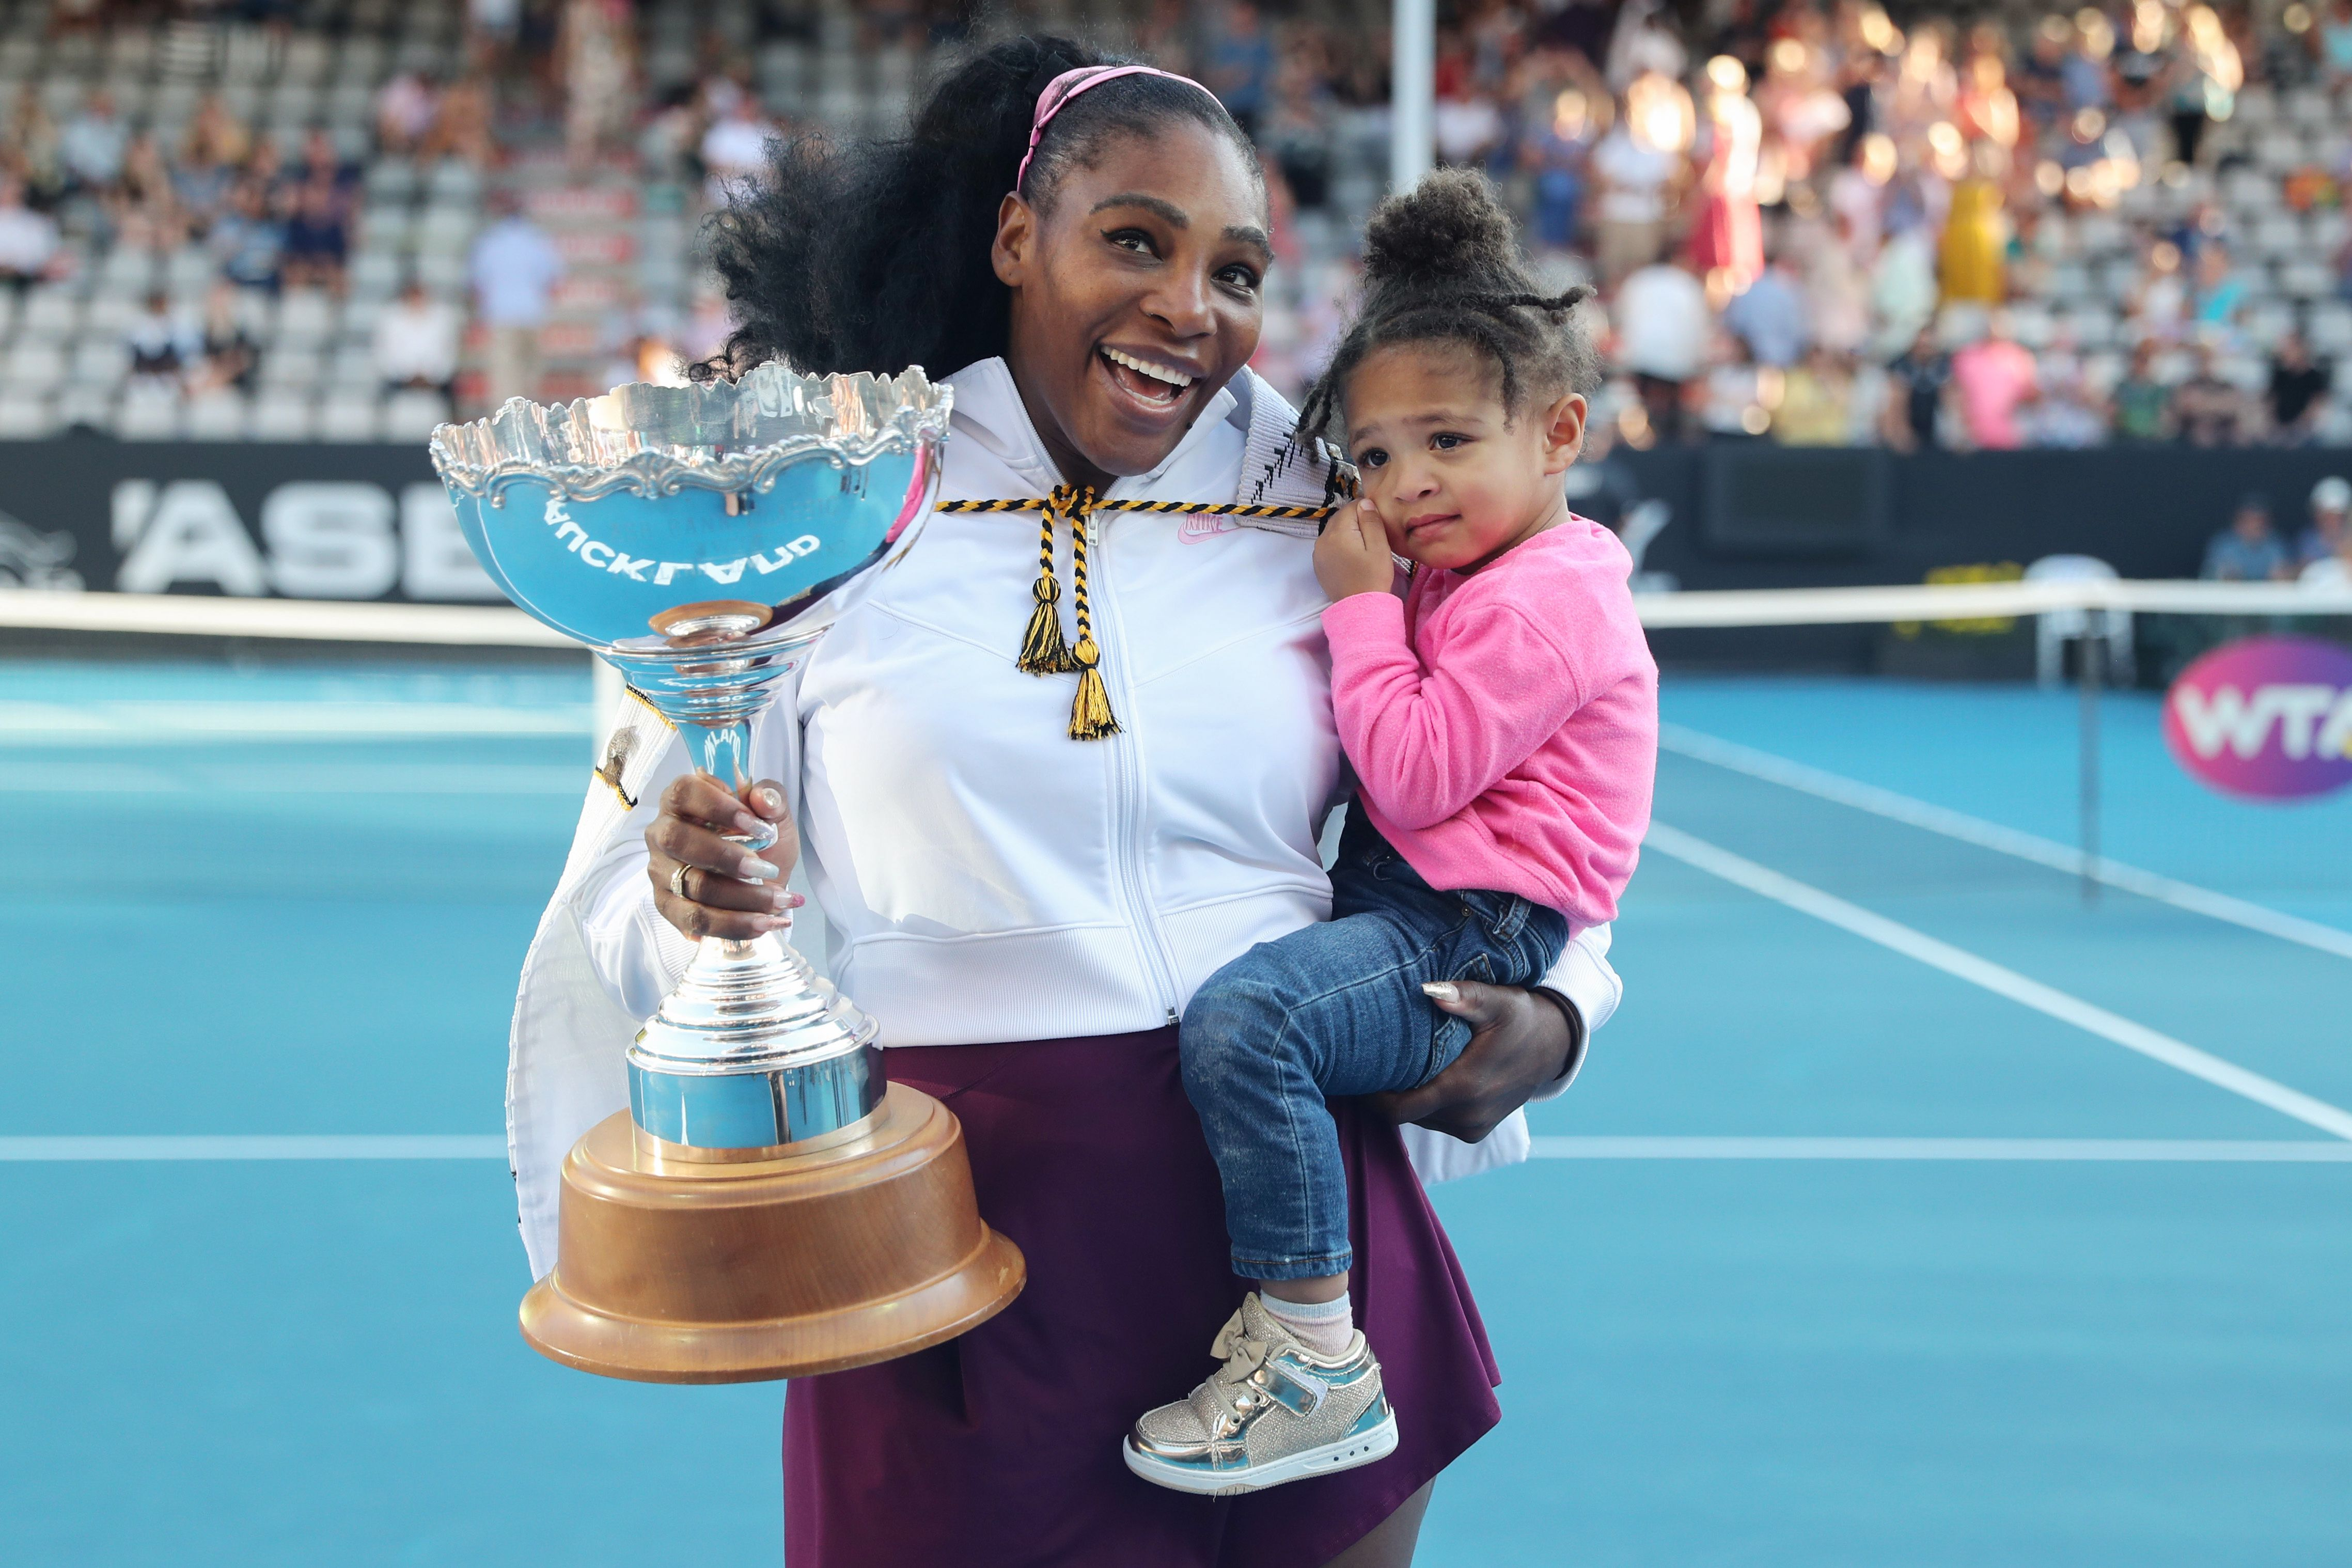 After ending her losing streak in finals, is Serena Williams on course to win the Australian Open?